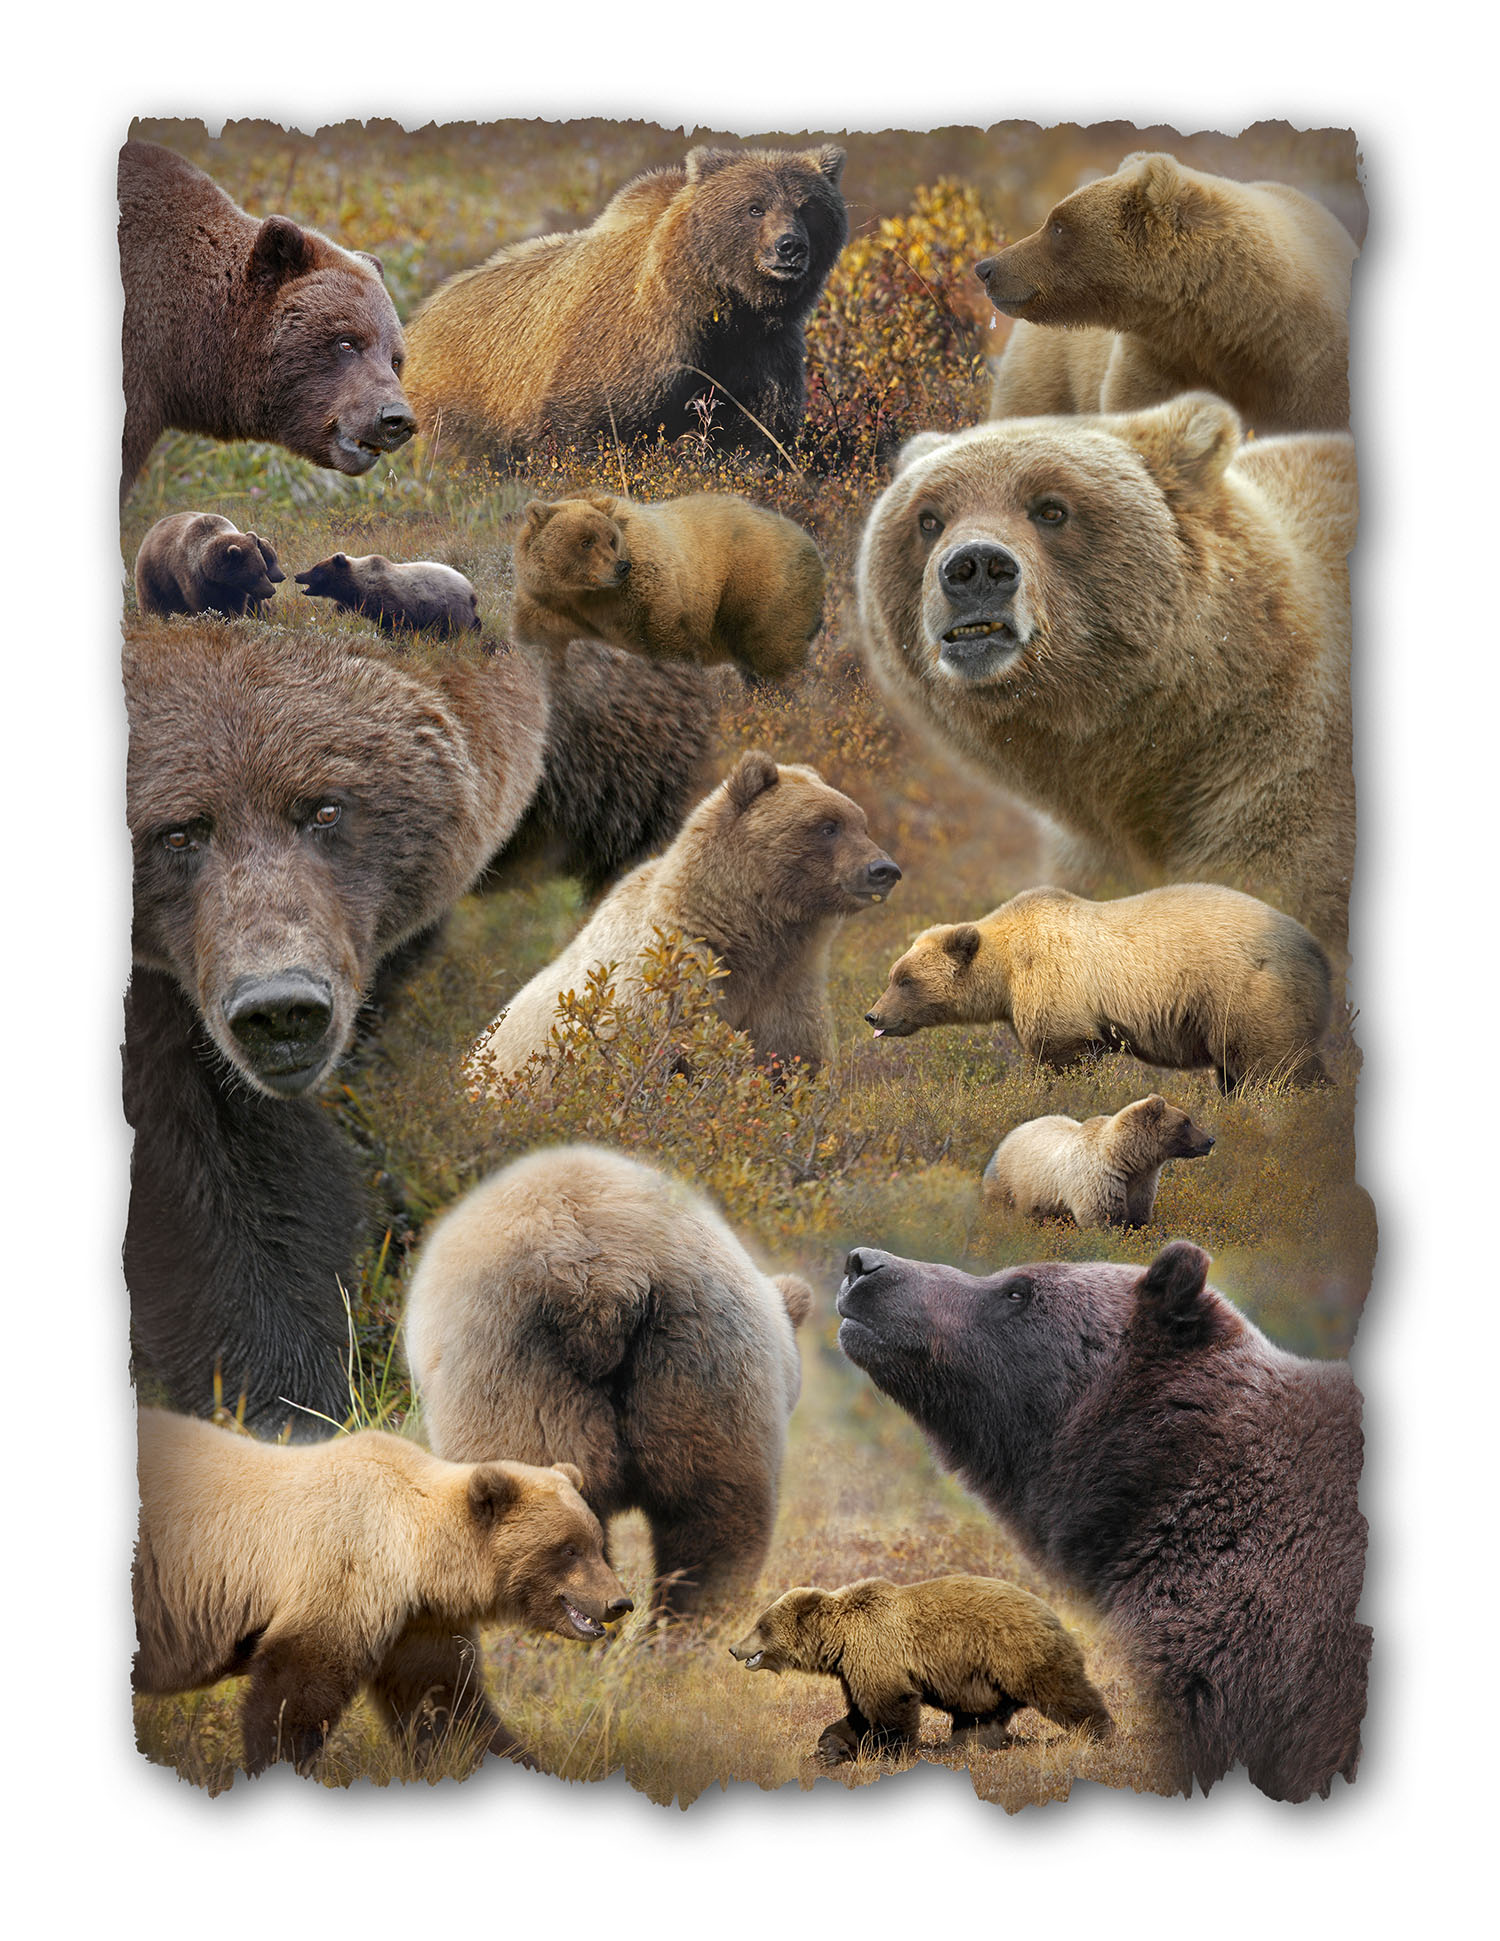 Poster of Grizzly Bears in Denali NP, Alaska. © George D. Lepp 2014  M-BE-GR-0001